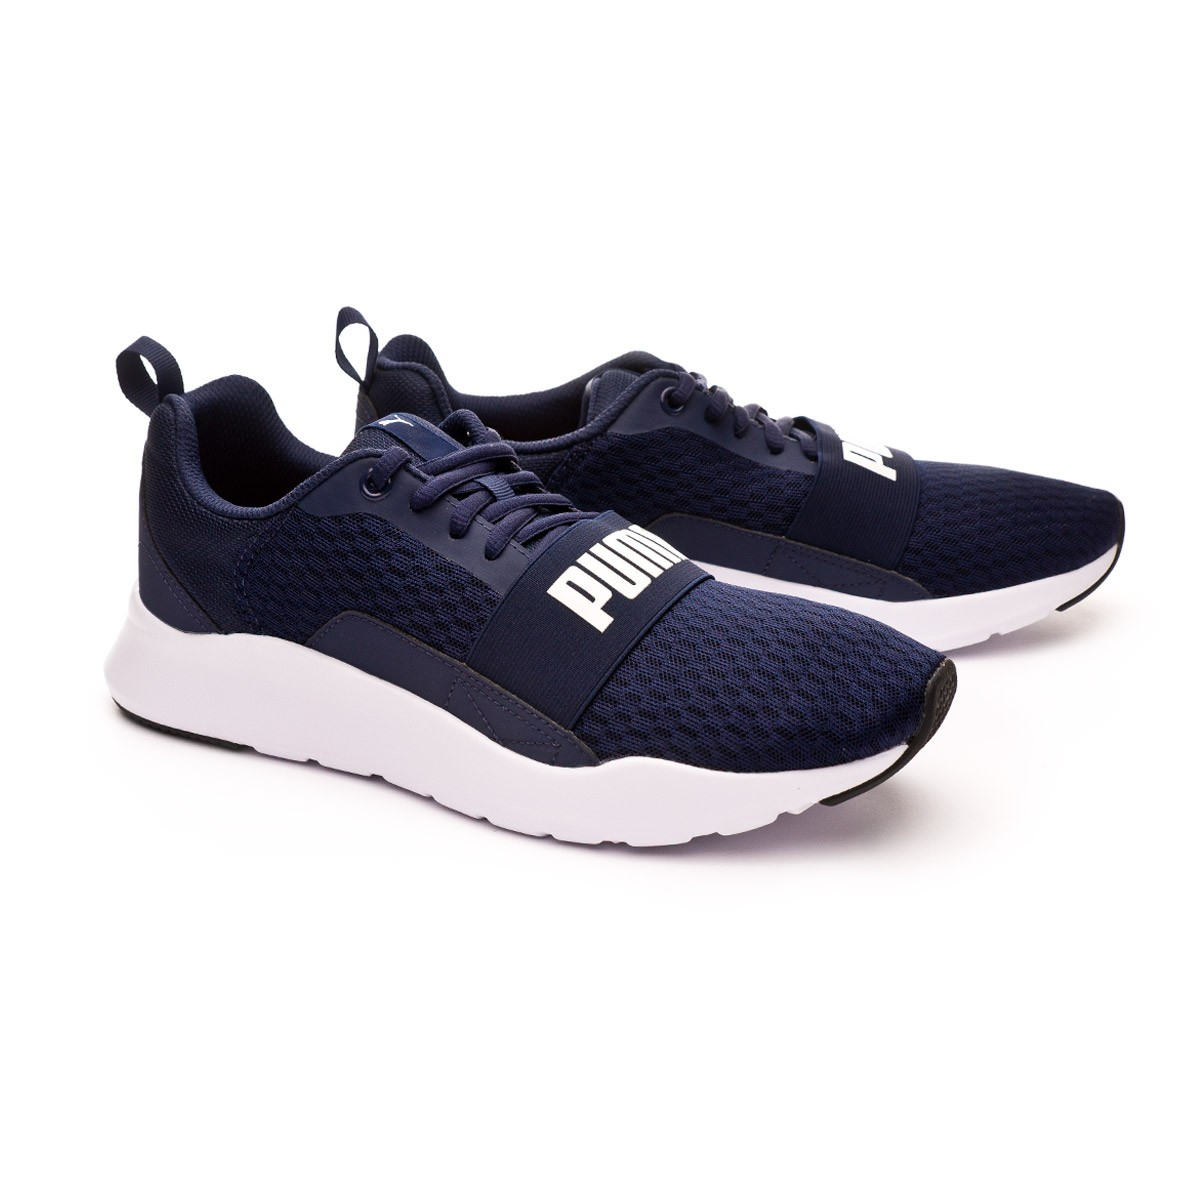 788aaded4869 Trainers Puma Wired Peacoat-White - Leaked soccer